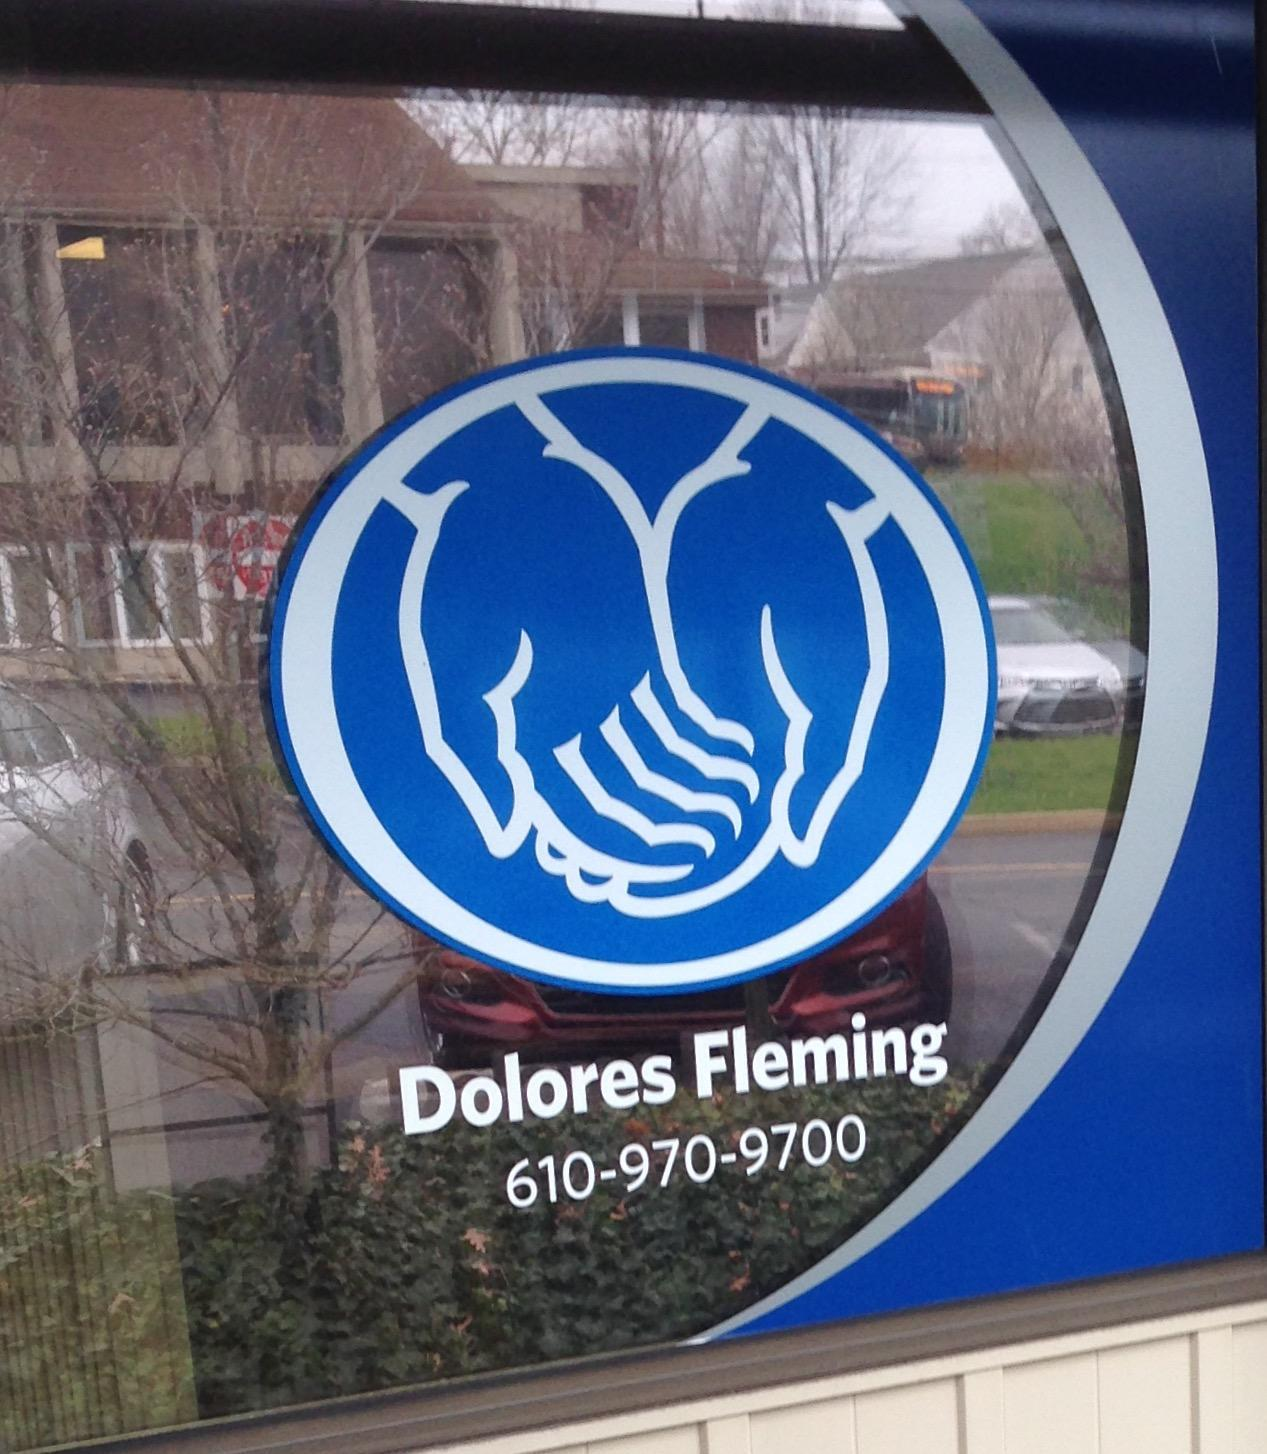 Allstate Insurance Agent: Dolores Fleming image 1